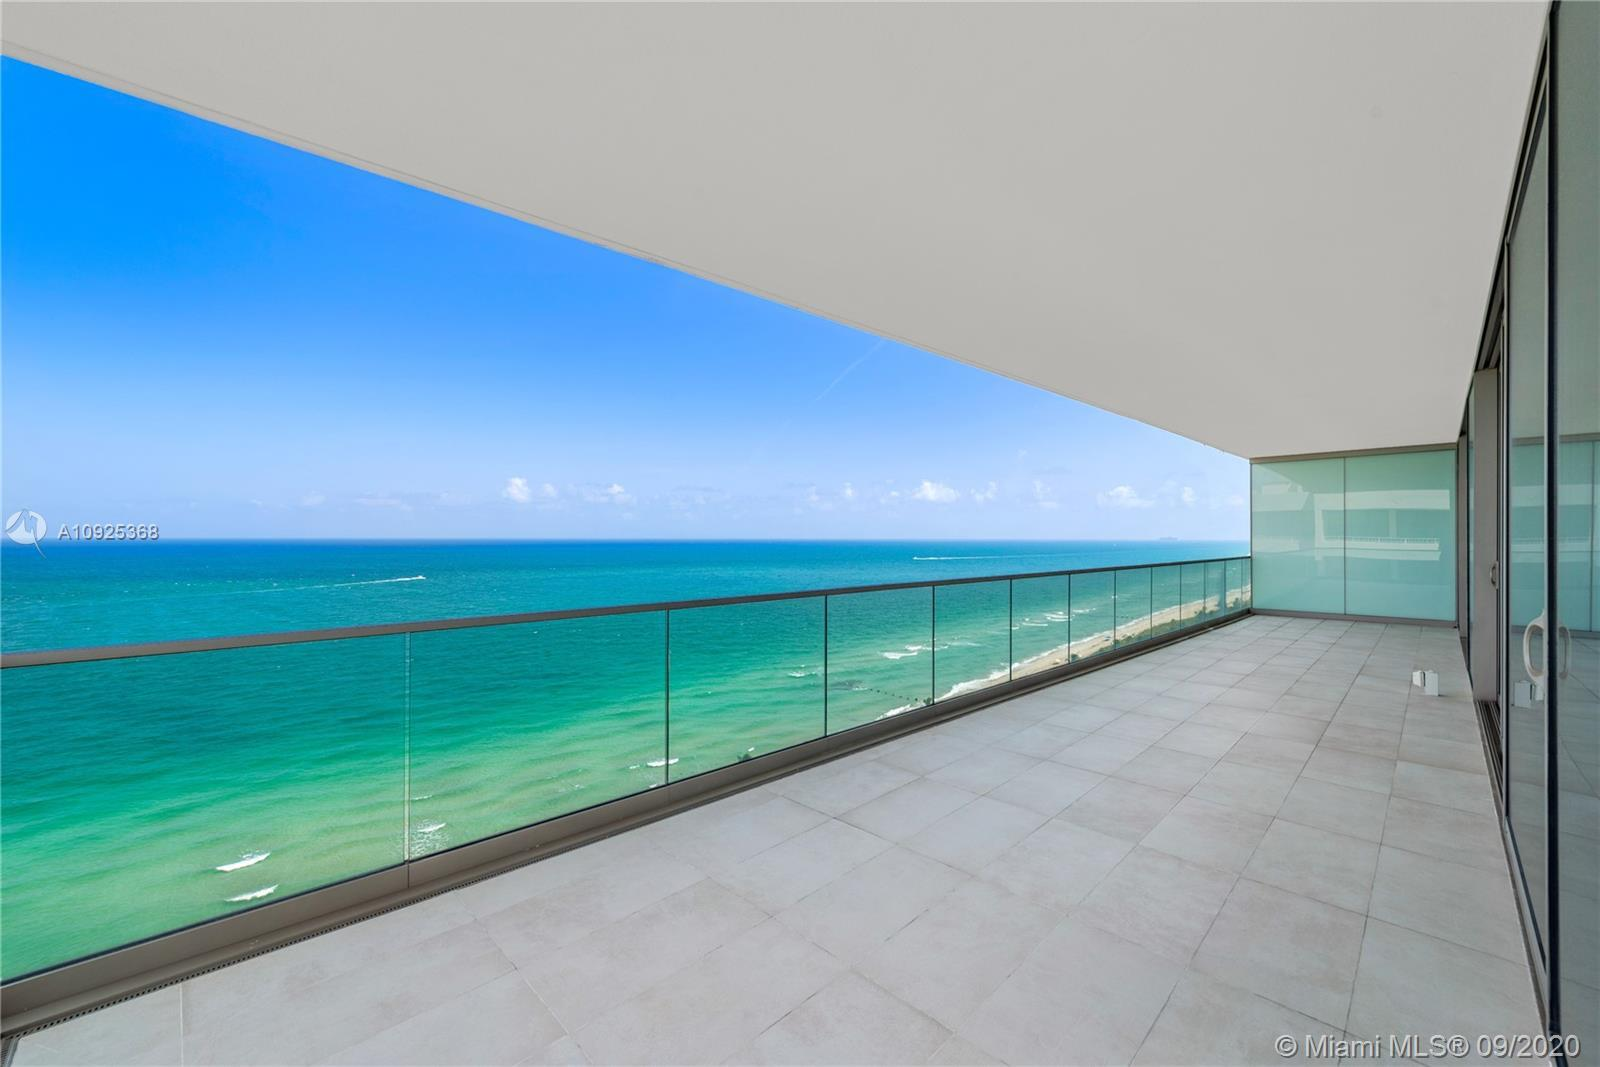 Oceana Bal Harbour's Flagship Floorplan! This corner North Tower unit has flooring and closets insta